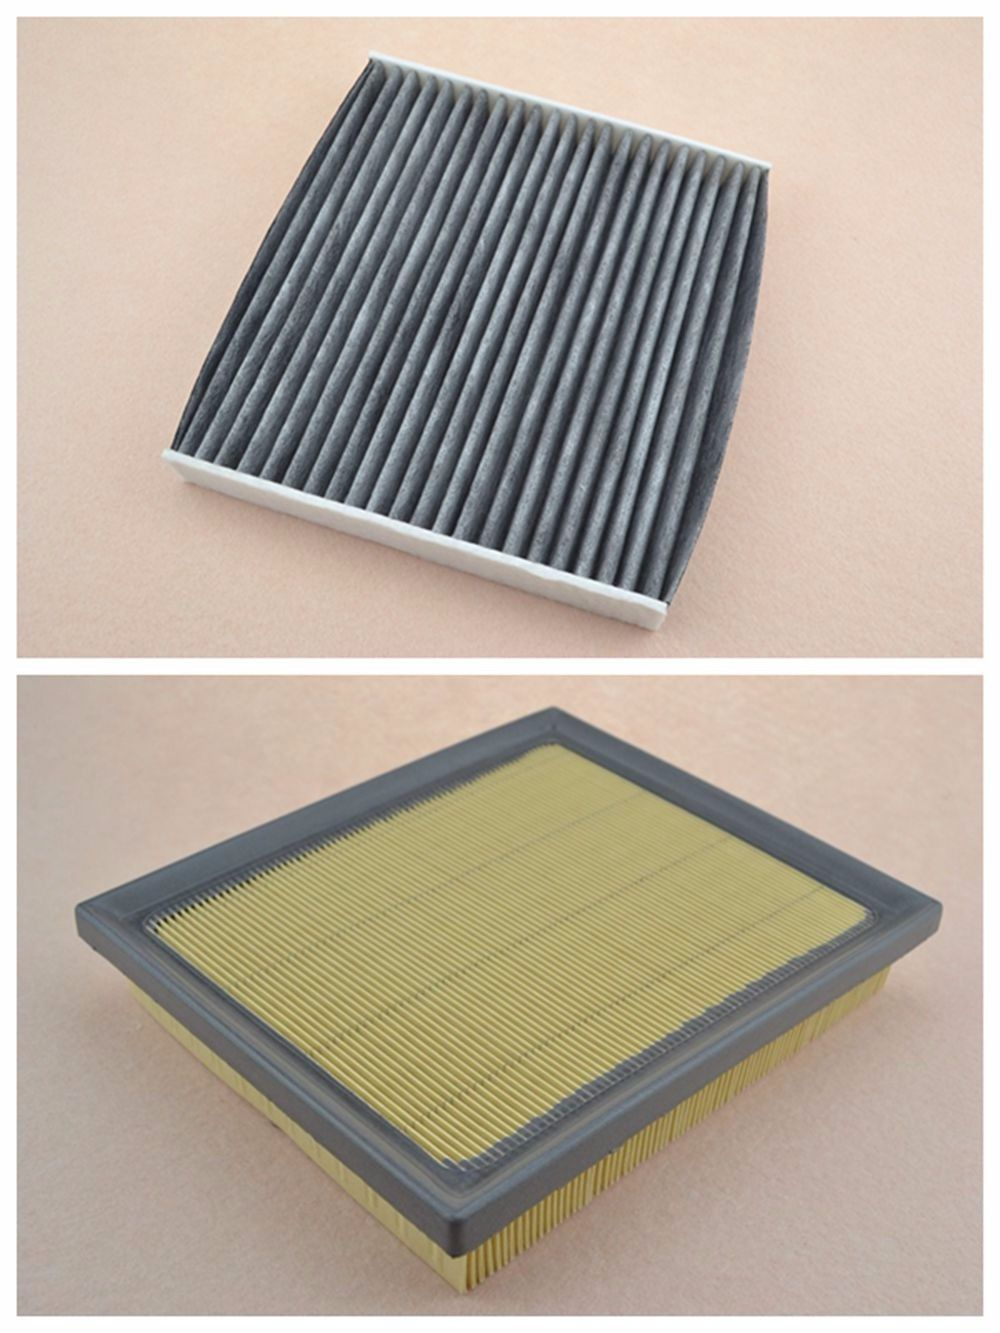 Bbq fuka oem quality car engine air filter cabin air filter fit for lexus ct200h toyota